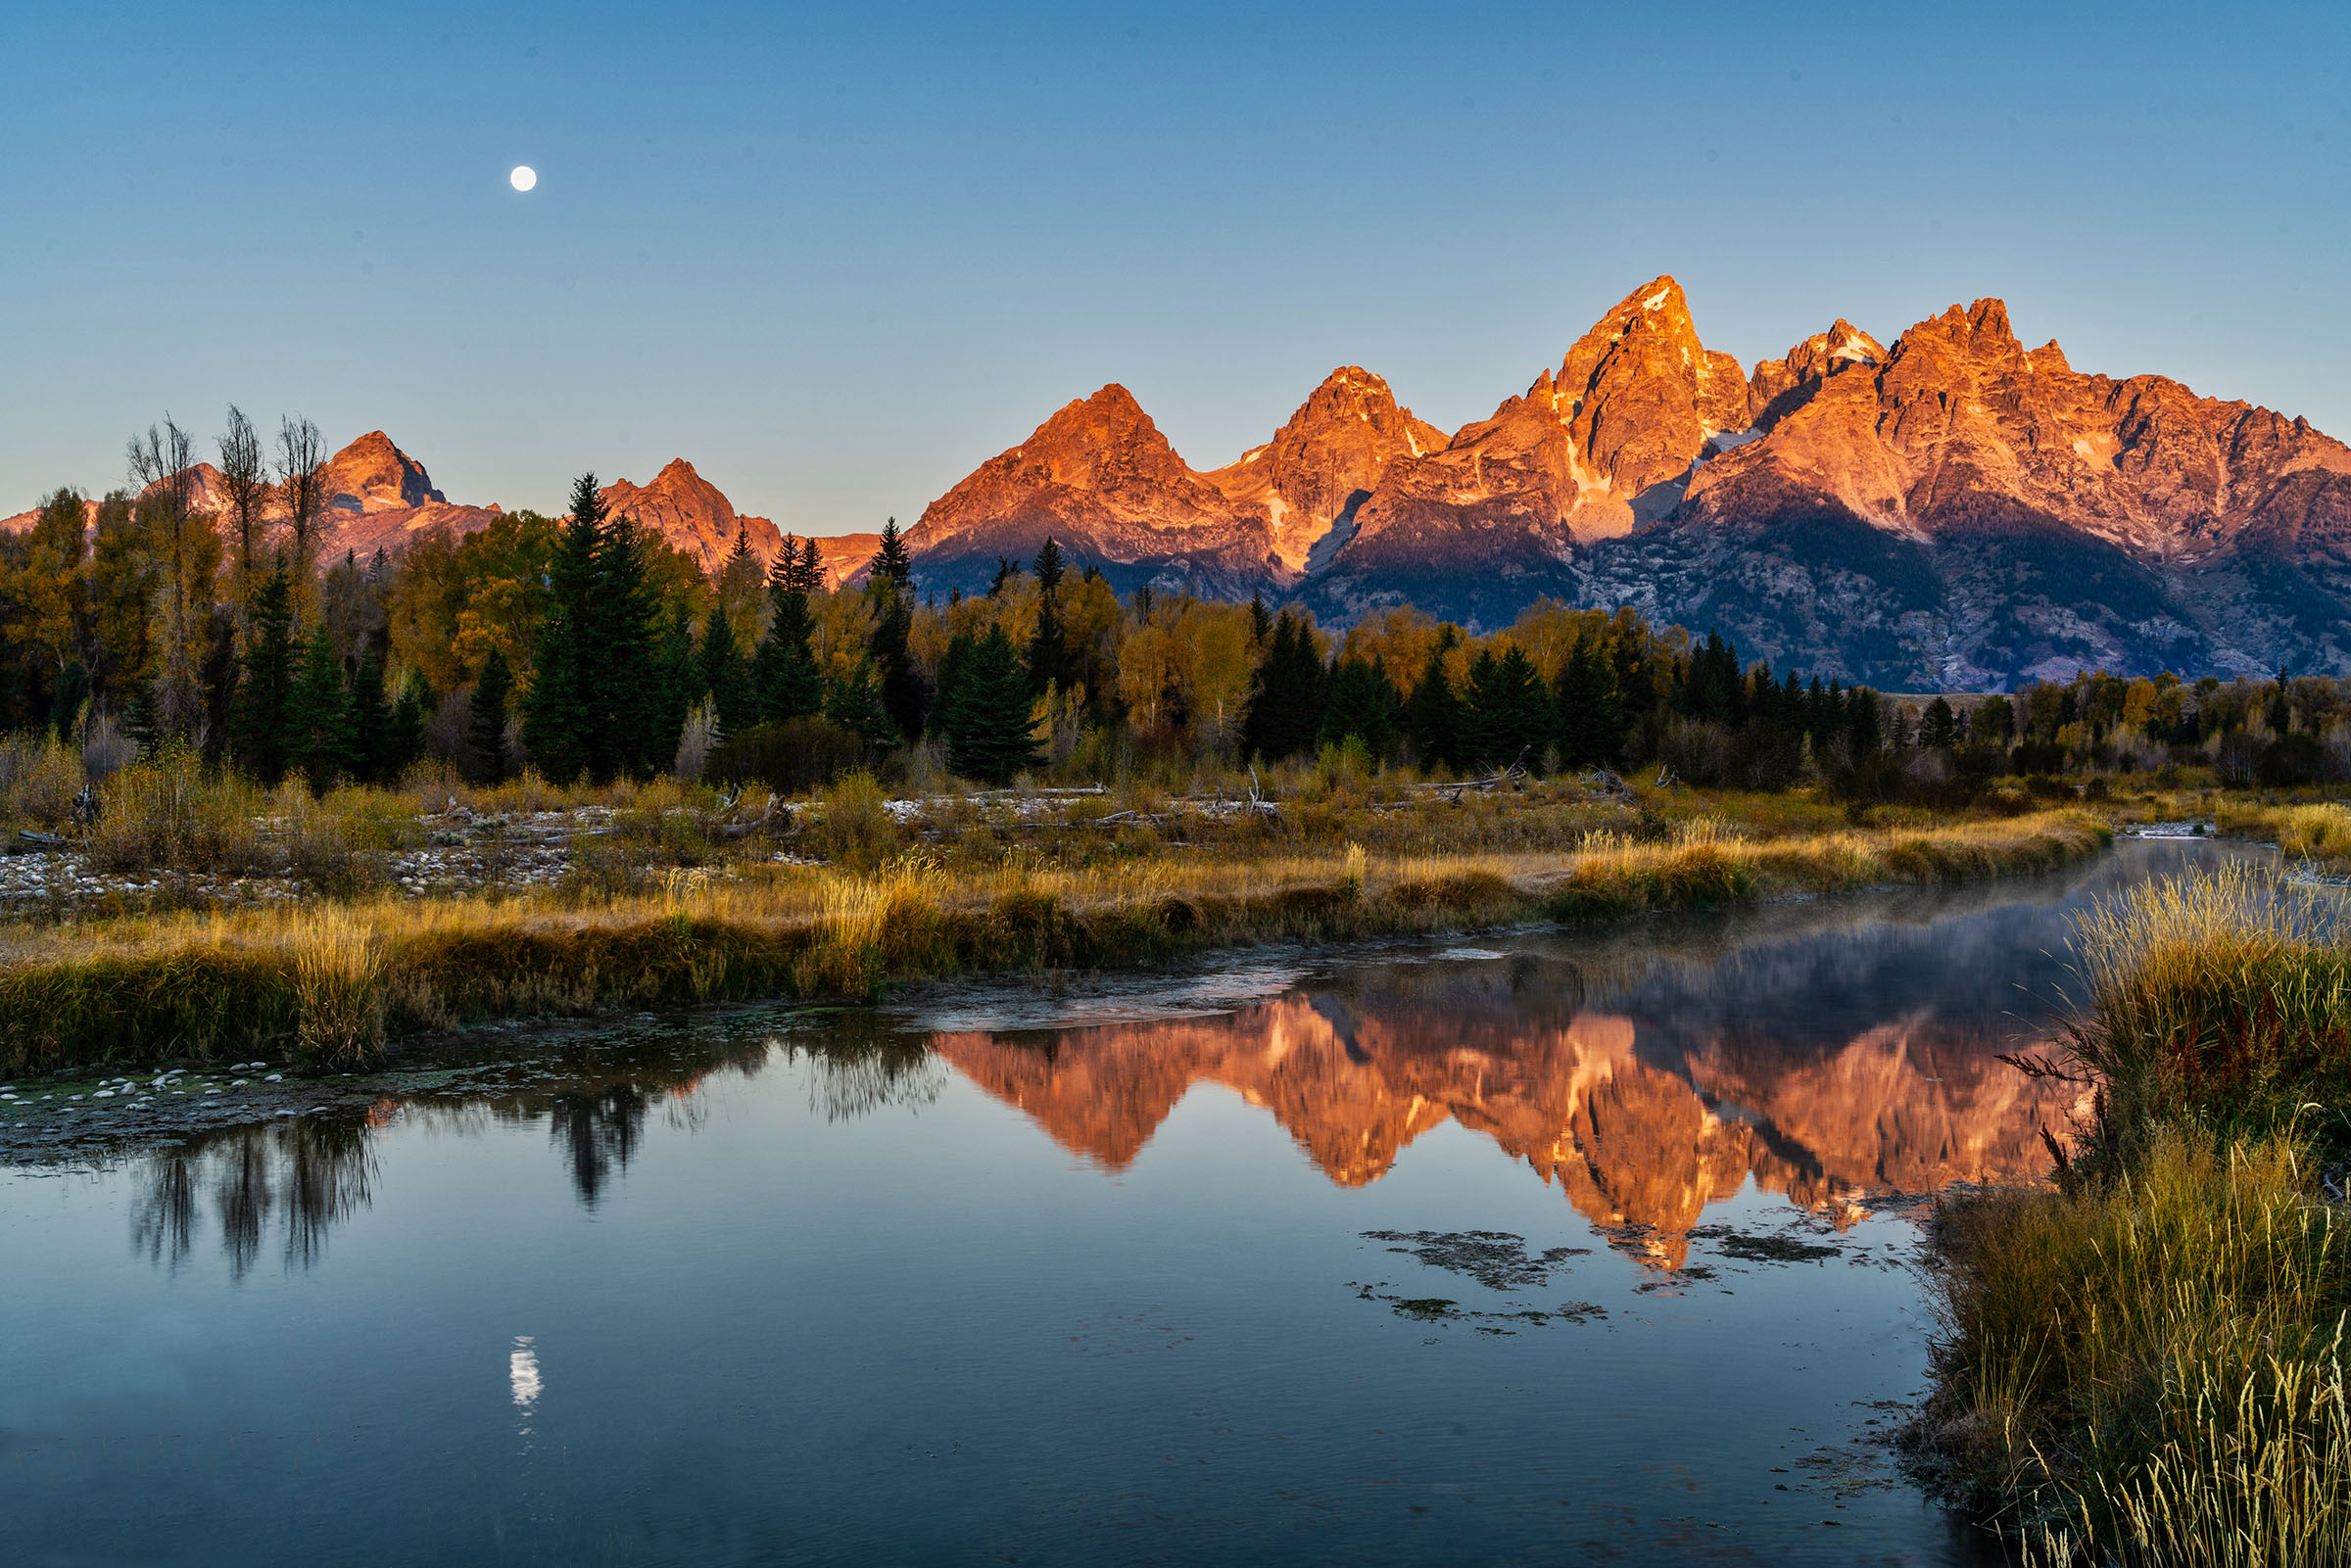 #grandtetonnationalpark, #schwabacherslanding, #schwabachers, #sunrise, #fullmoon, #moon, #clearday, #photographers, #cold, #dark, #stress, #workshop, #tripod, #sony